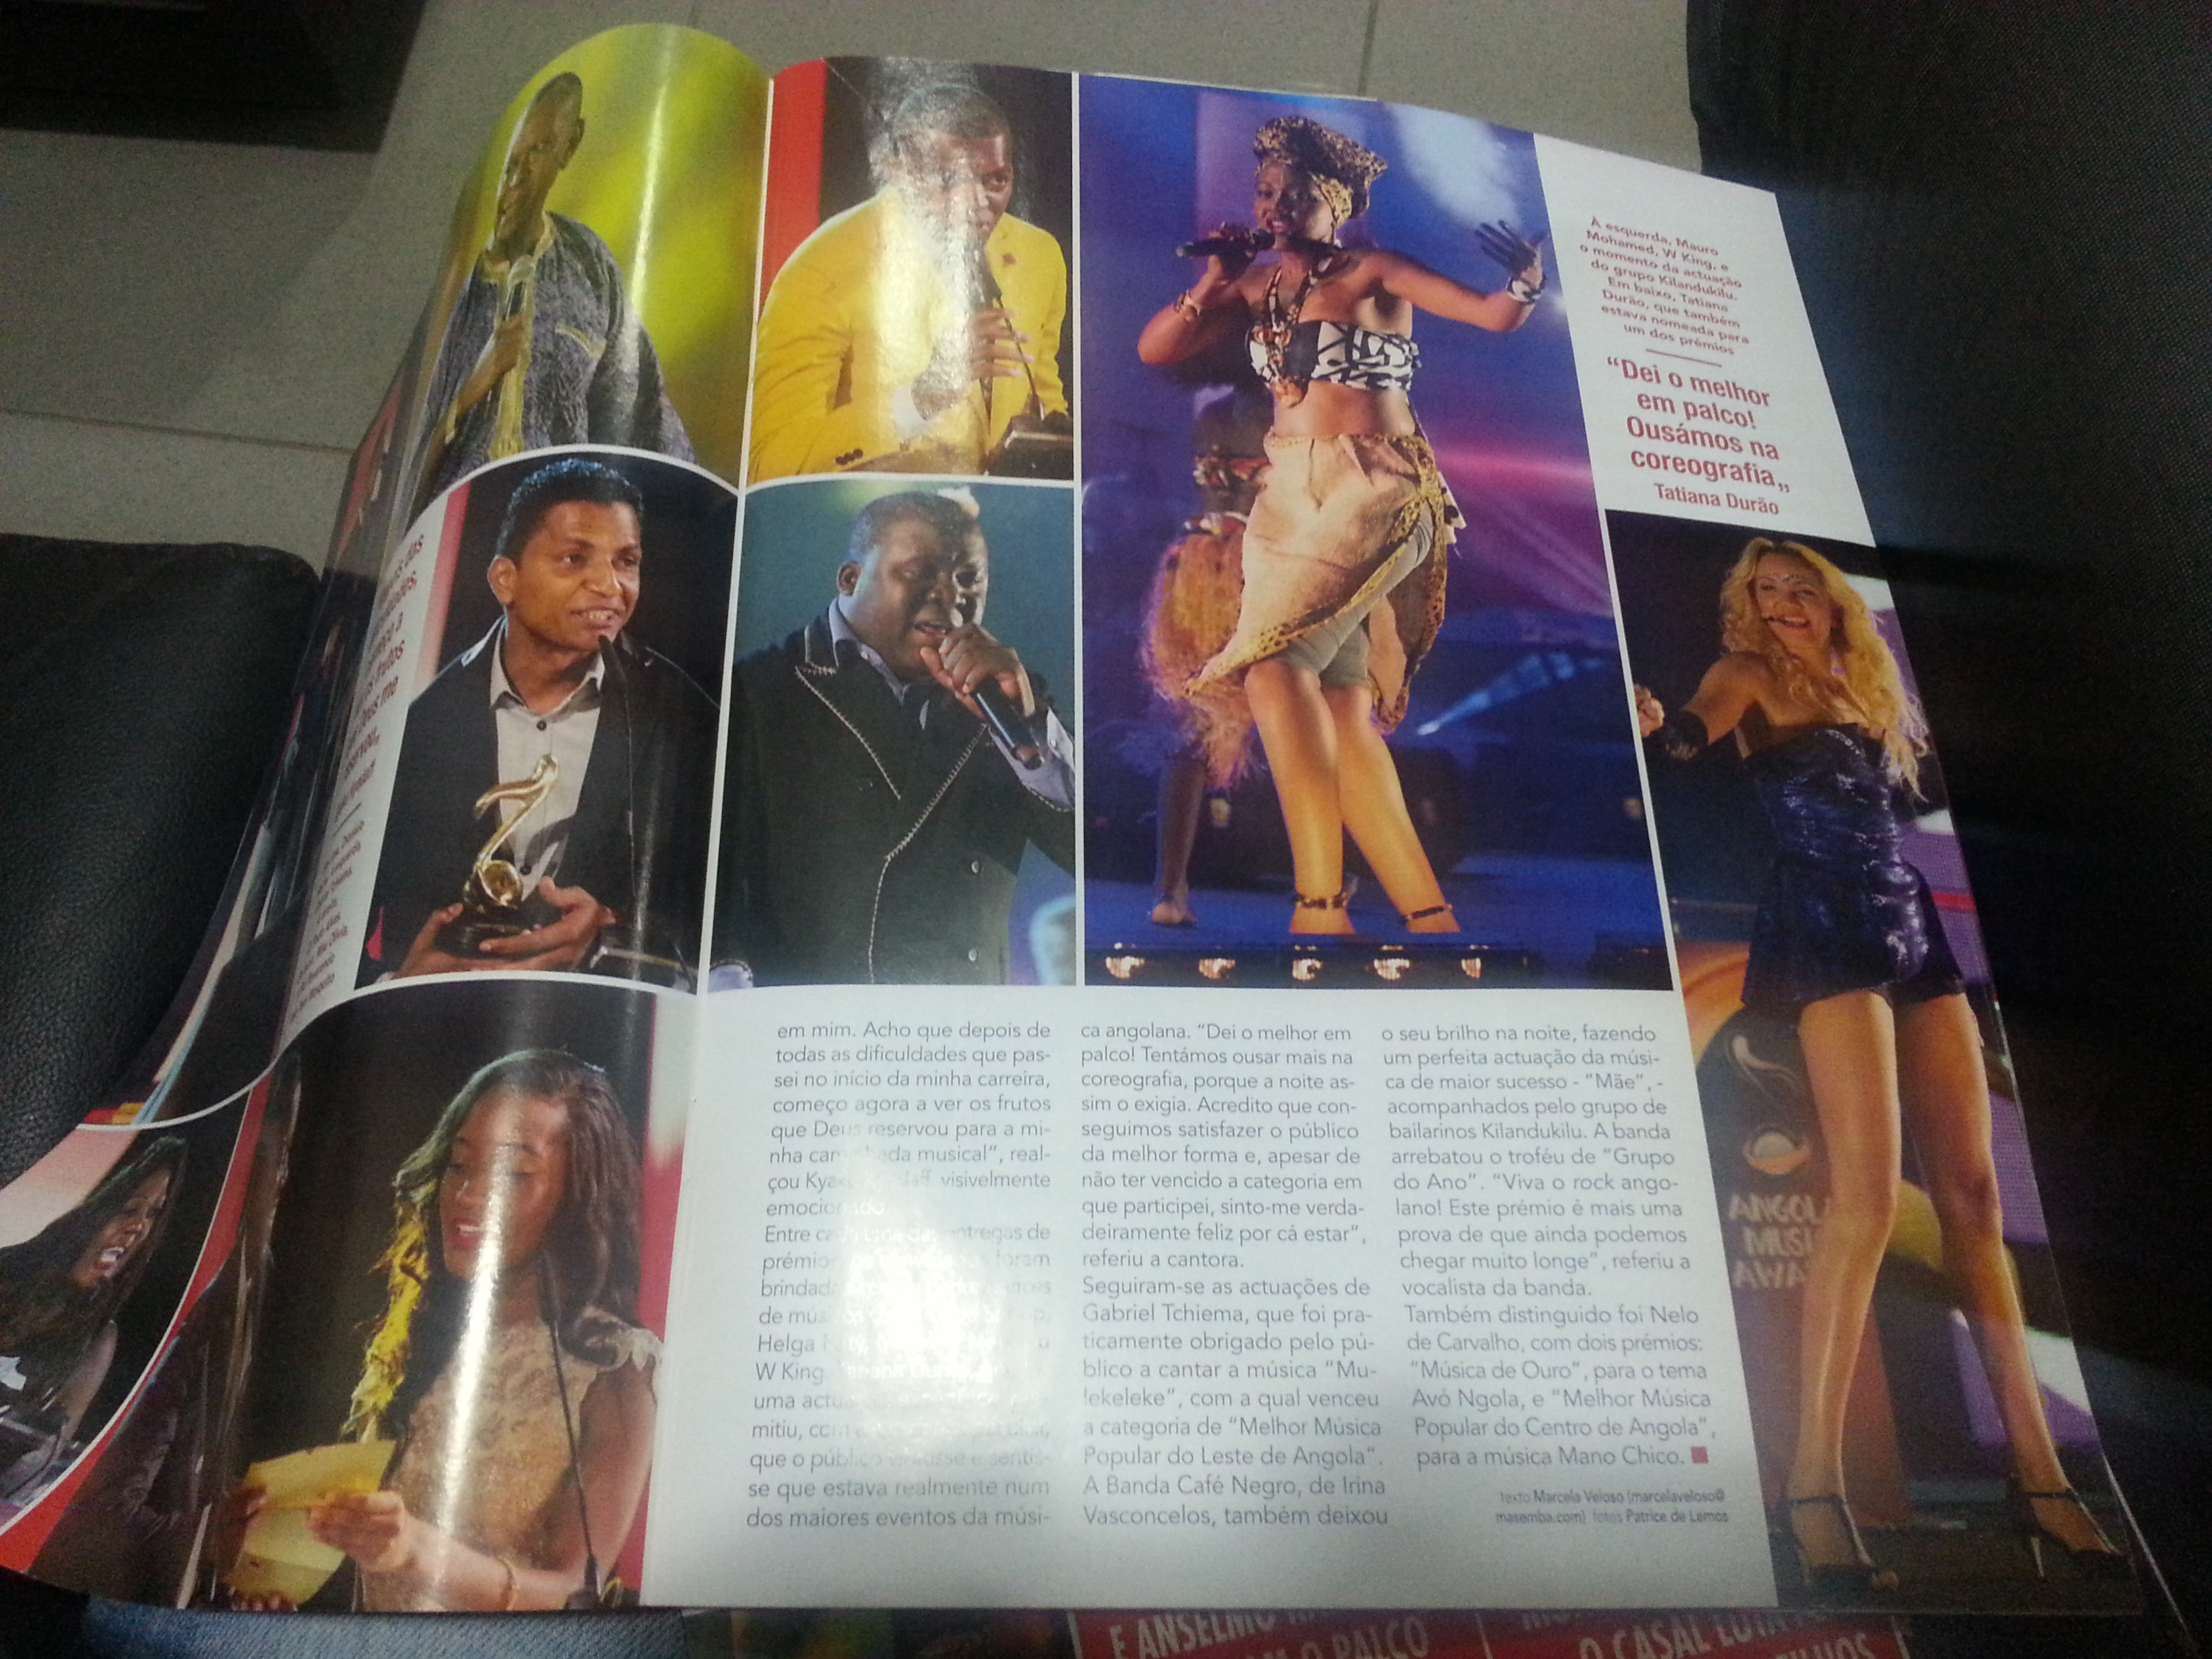 KATUMBELLA FEATURES ON LUX MAGAZINE